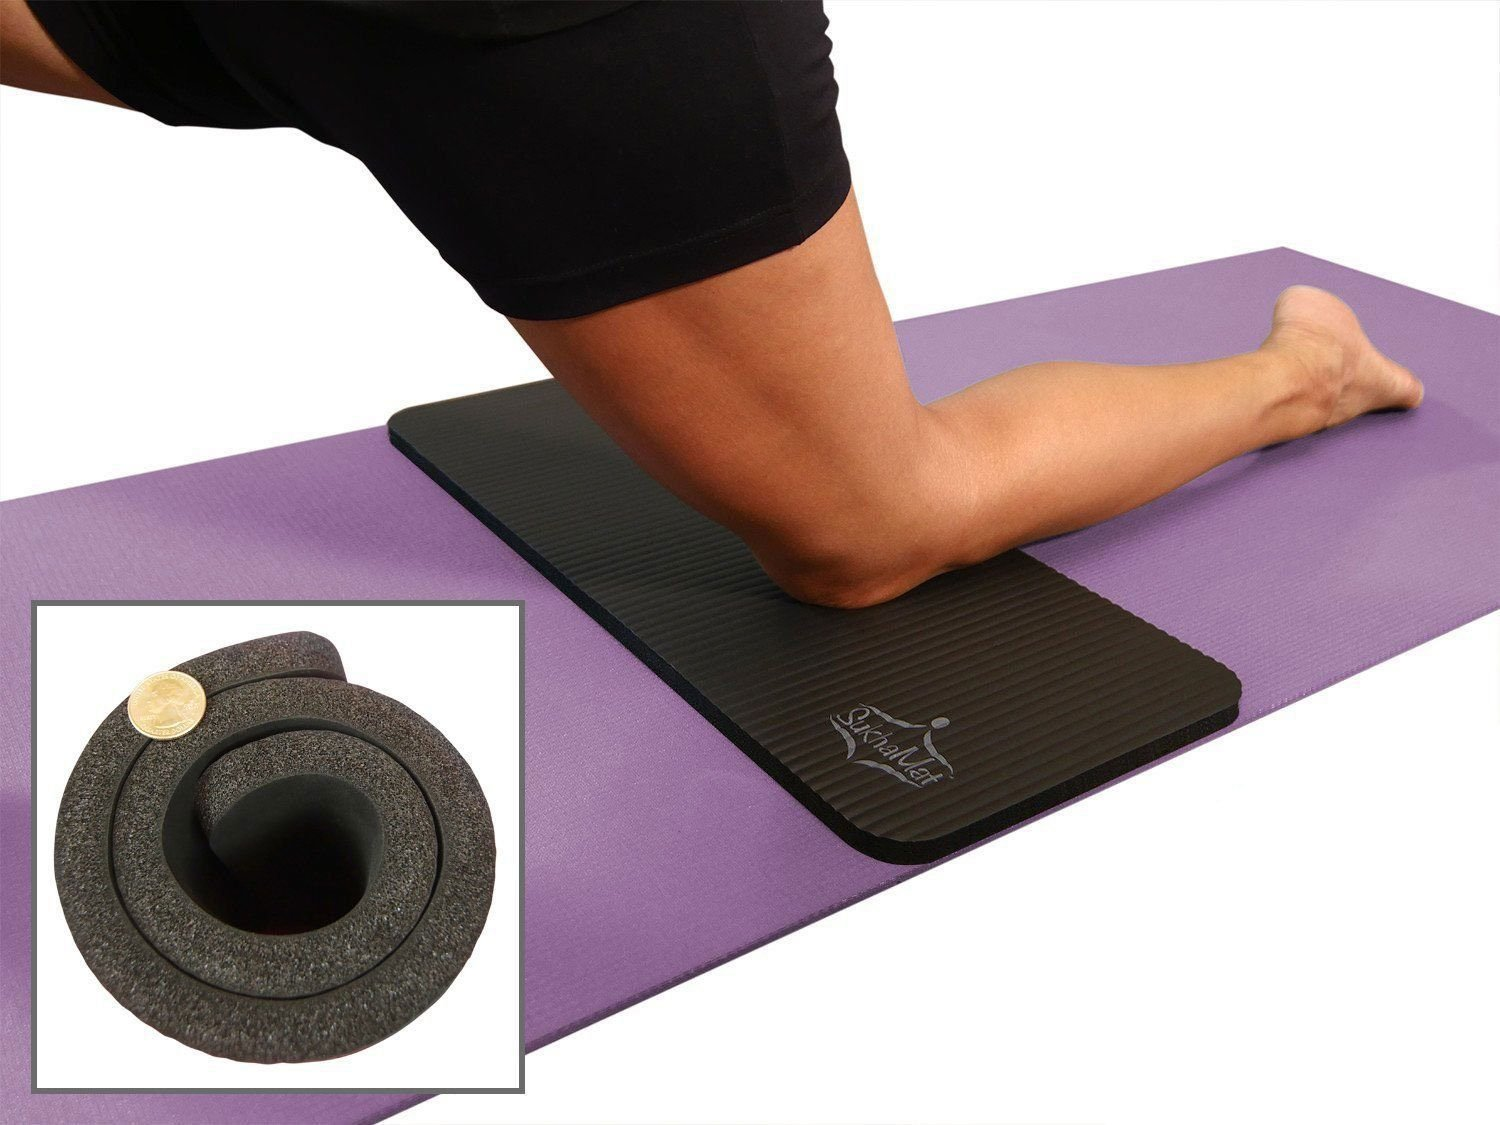 SukhaMat Yoga Knee Pad Cushion America s Best Exercise Knee Pad – Eliminate Pain During Yoga or Exercise – Extra Padding Support for Knees, Wrists, Elbows – Complements Your Yoga Mat